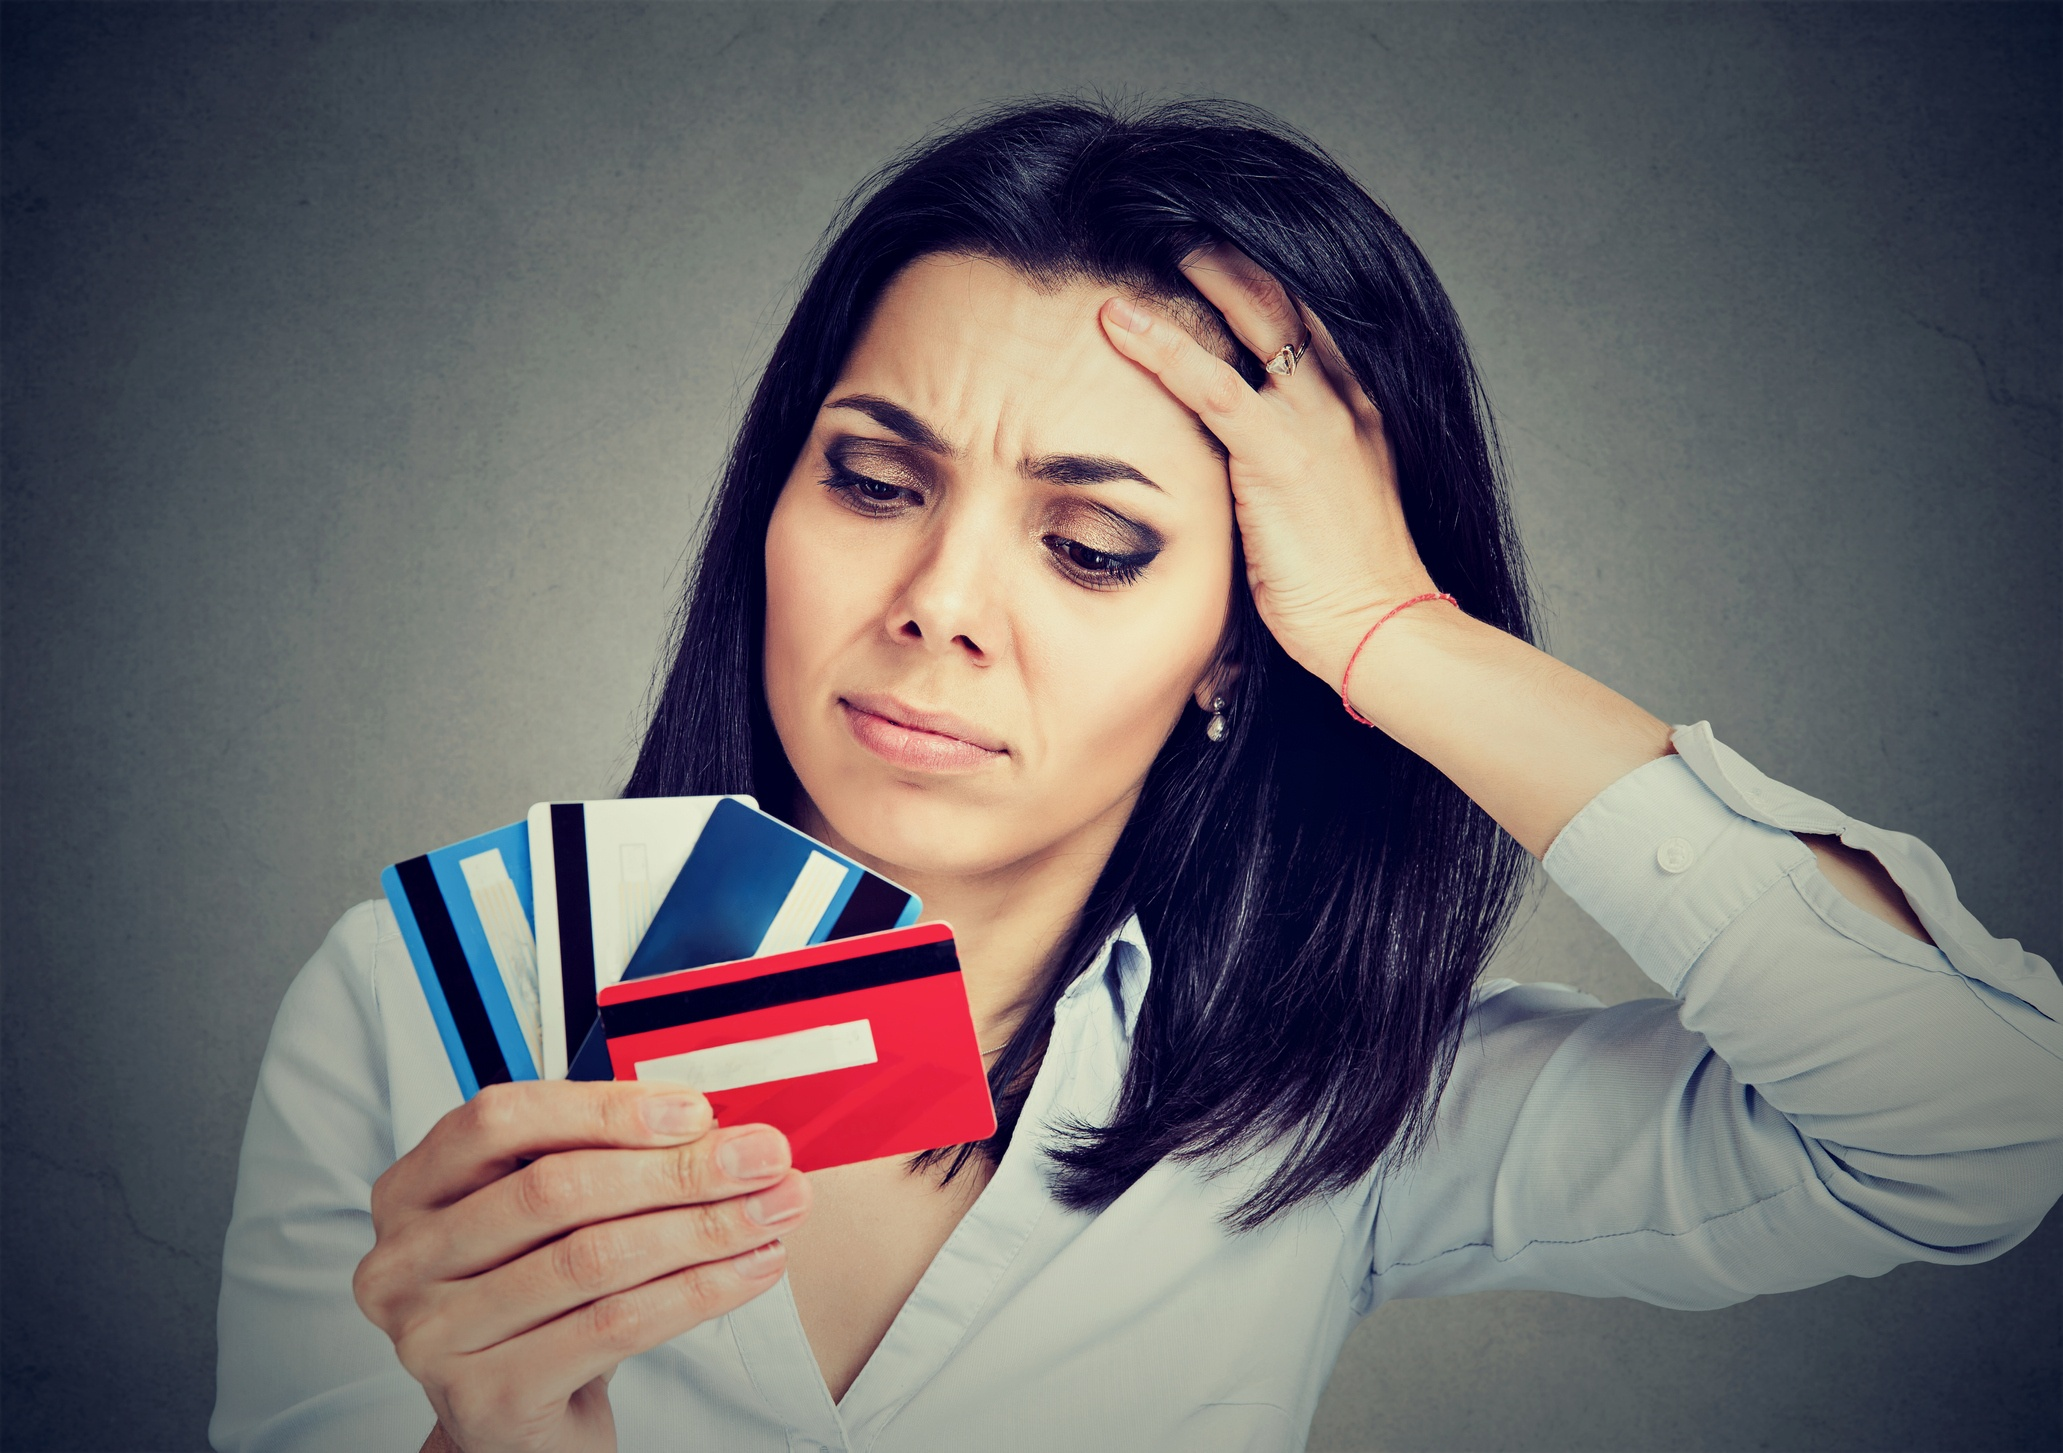 Woman looking at credit cards with confusion.